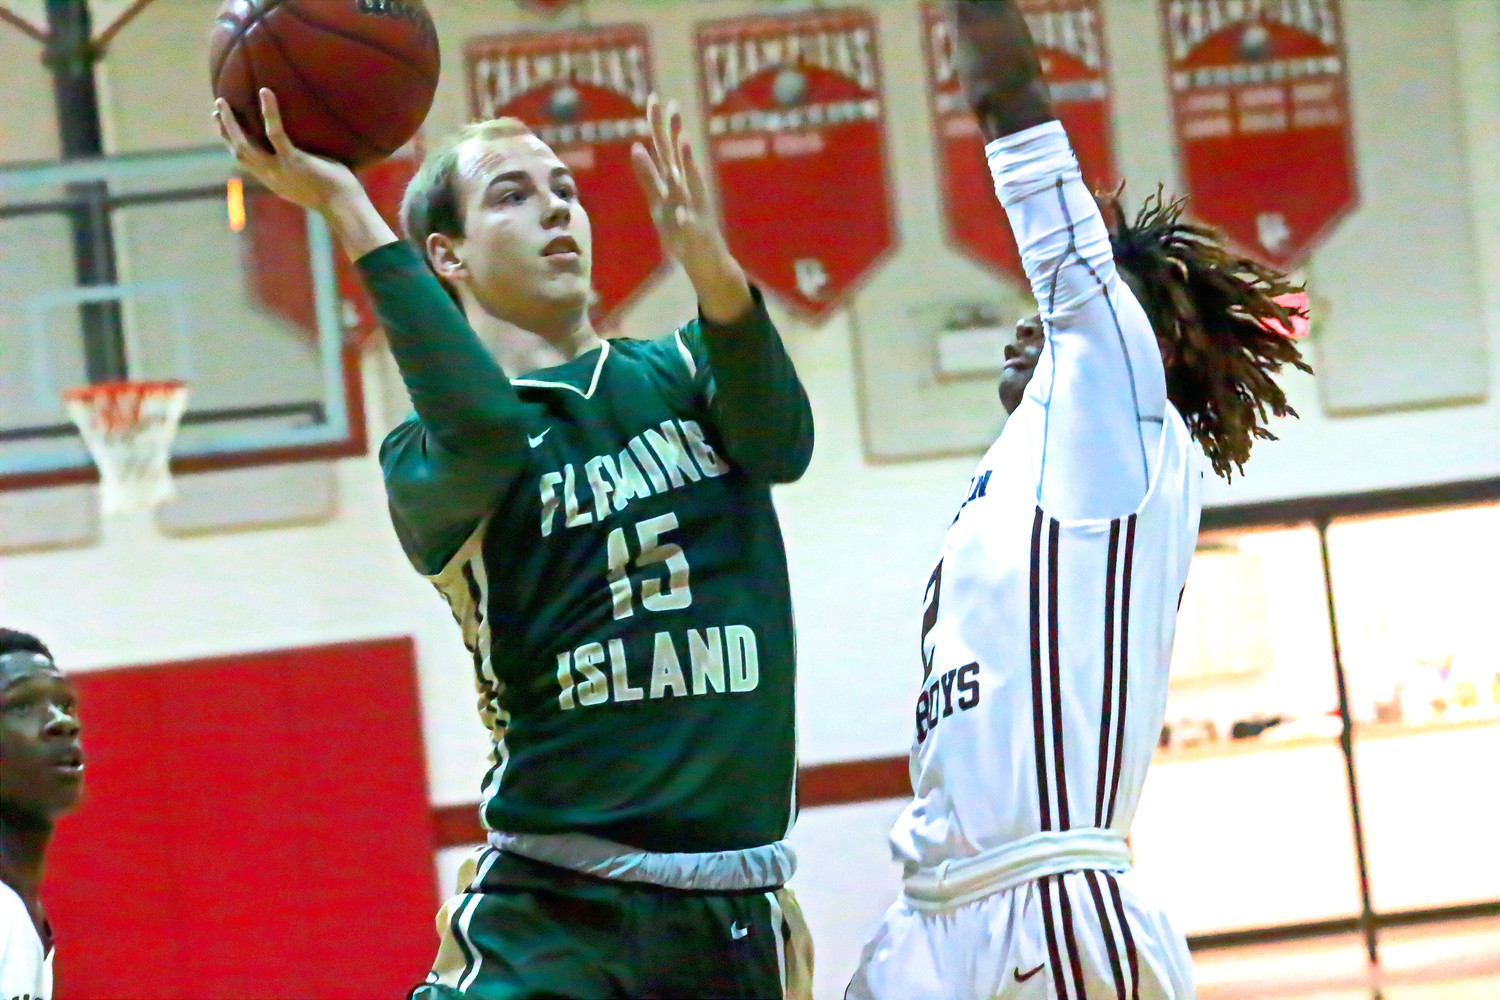 Fleming Island High guard Zach Gagne goes for one-hander in Golden Eagles semfinal game against Madison County at Baker County Christmas Tournament.